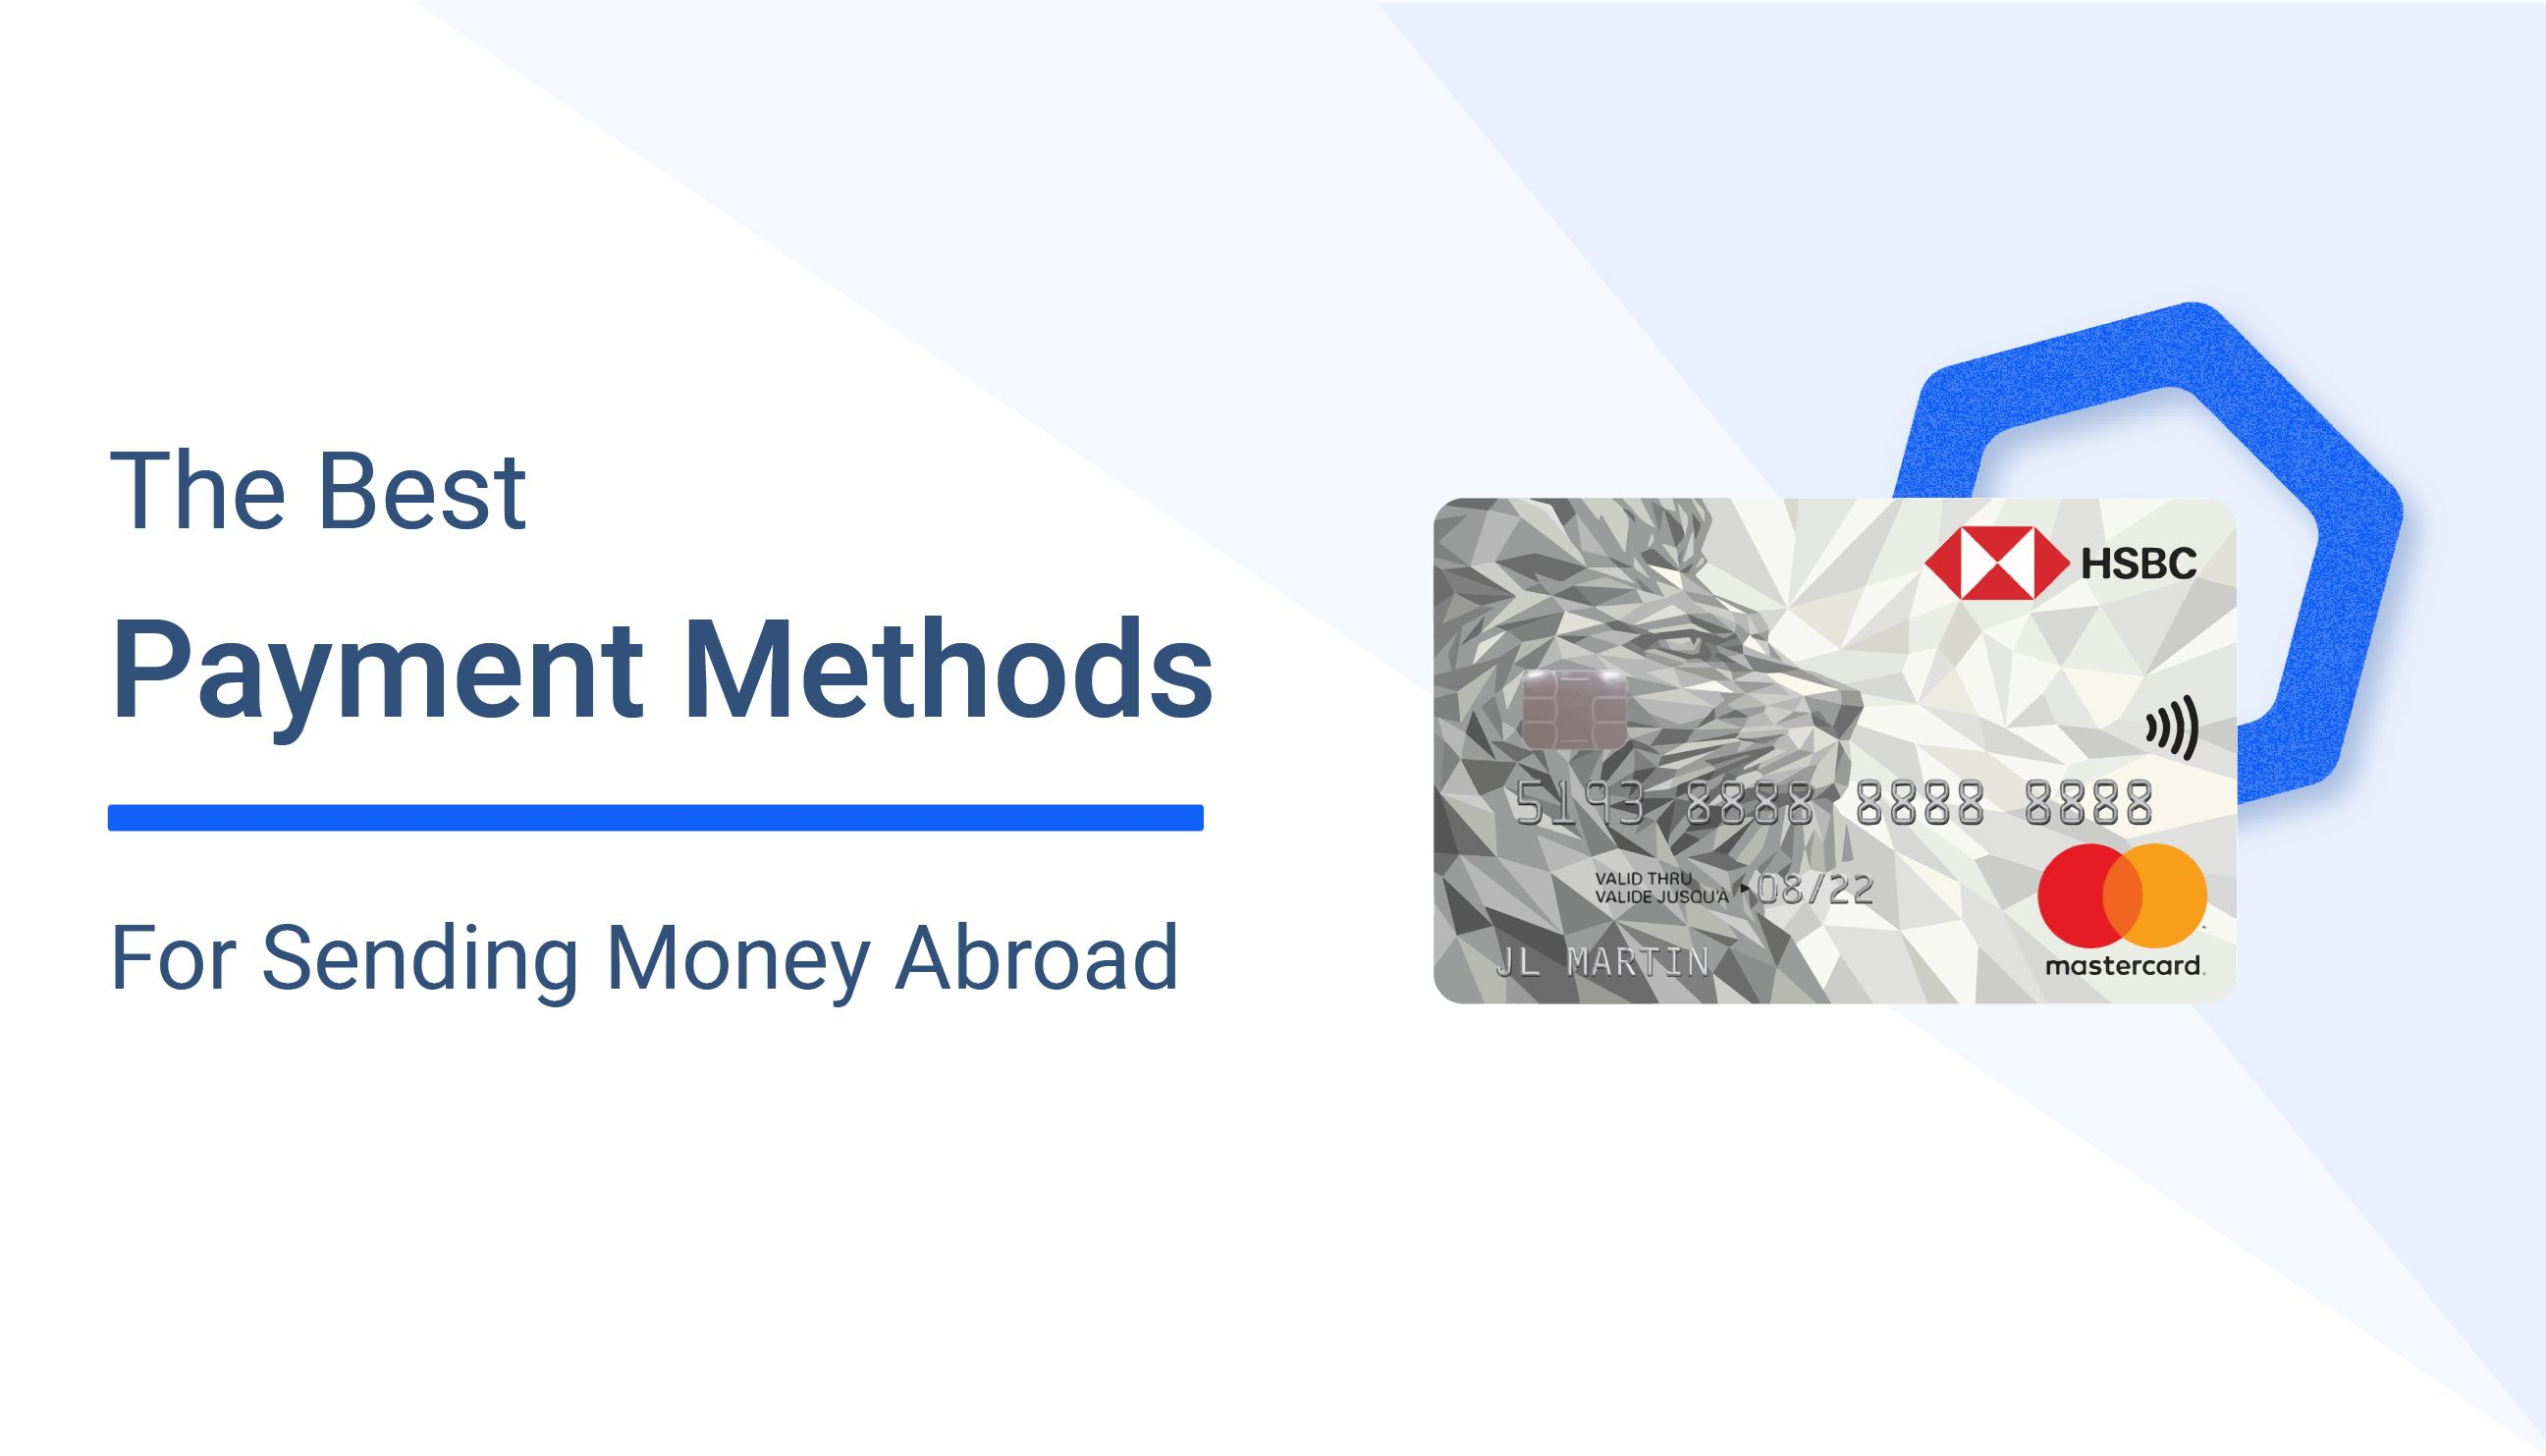 What Are the Best Payment Methods to Send Money Abroad?